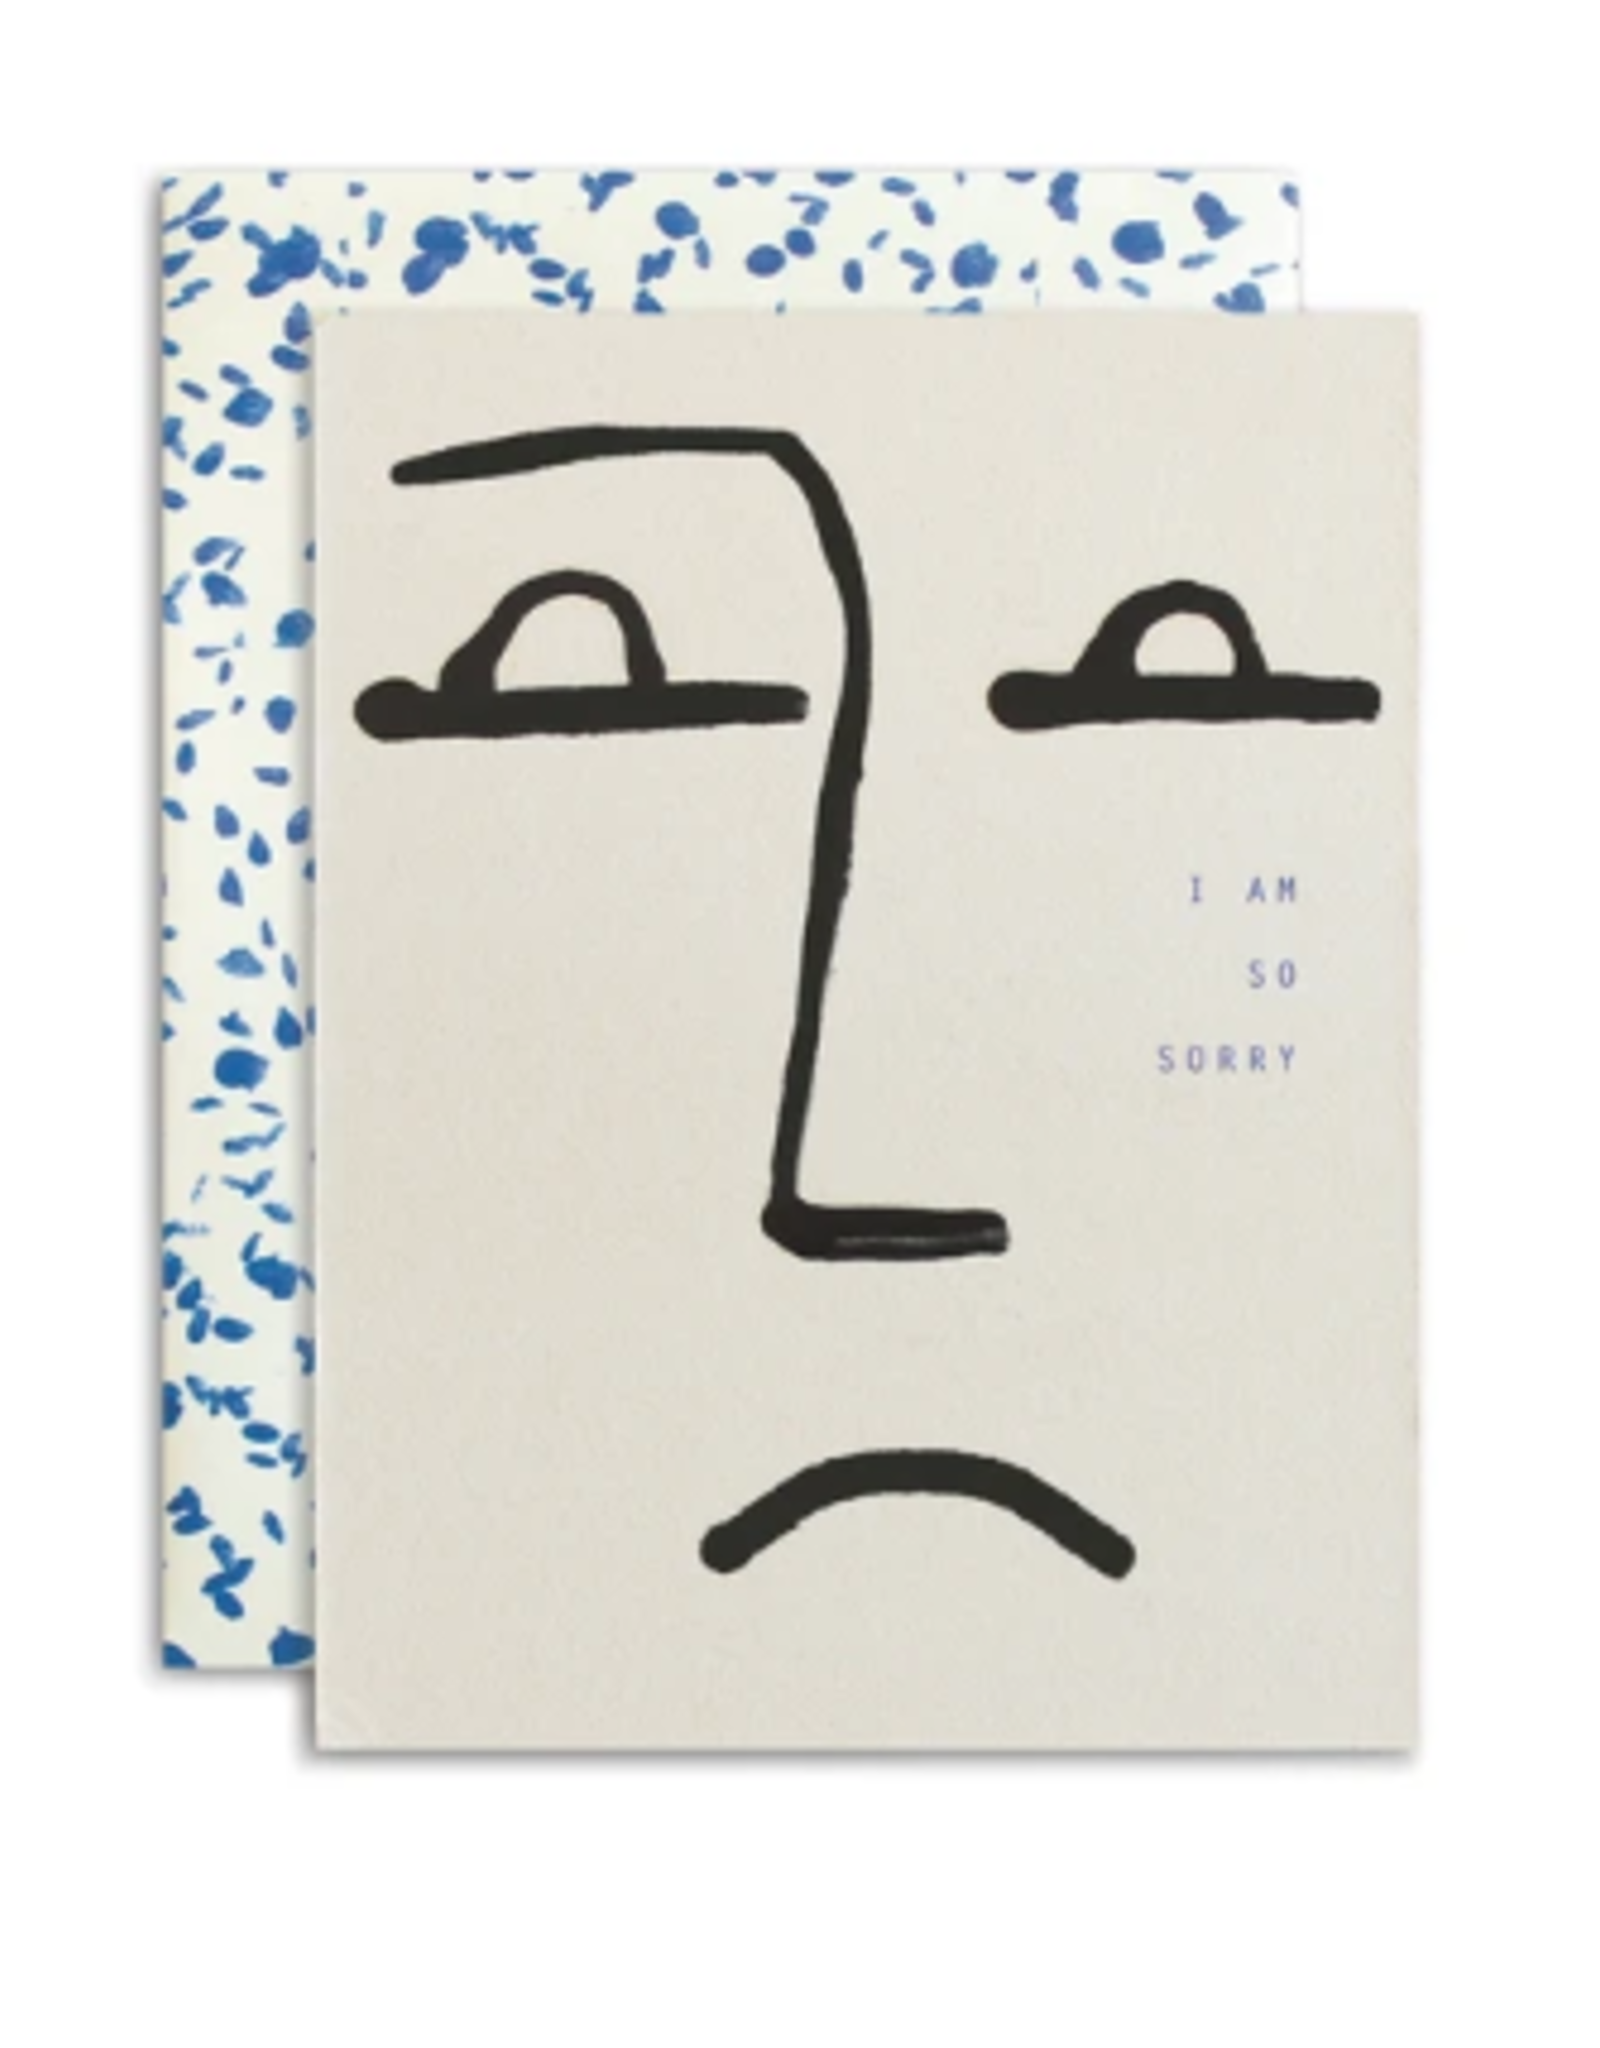 The Frown Card